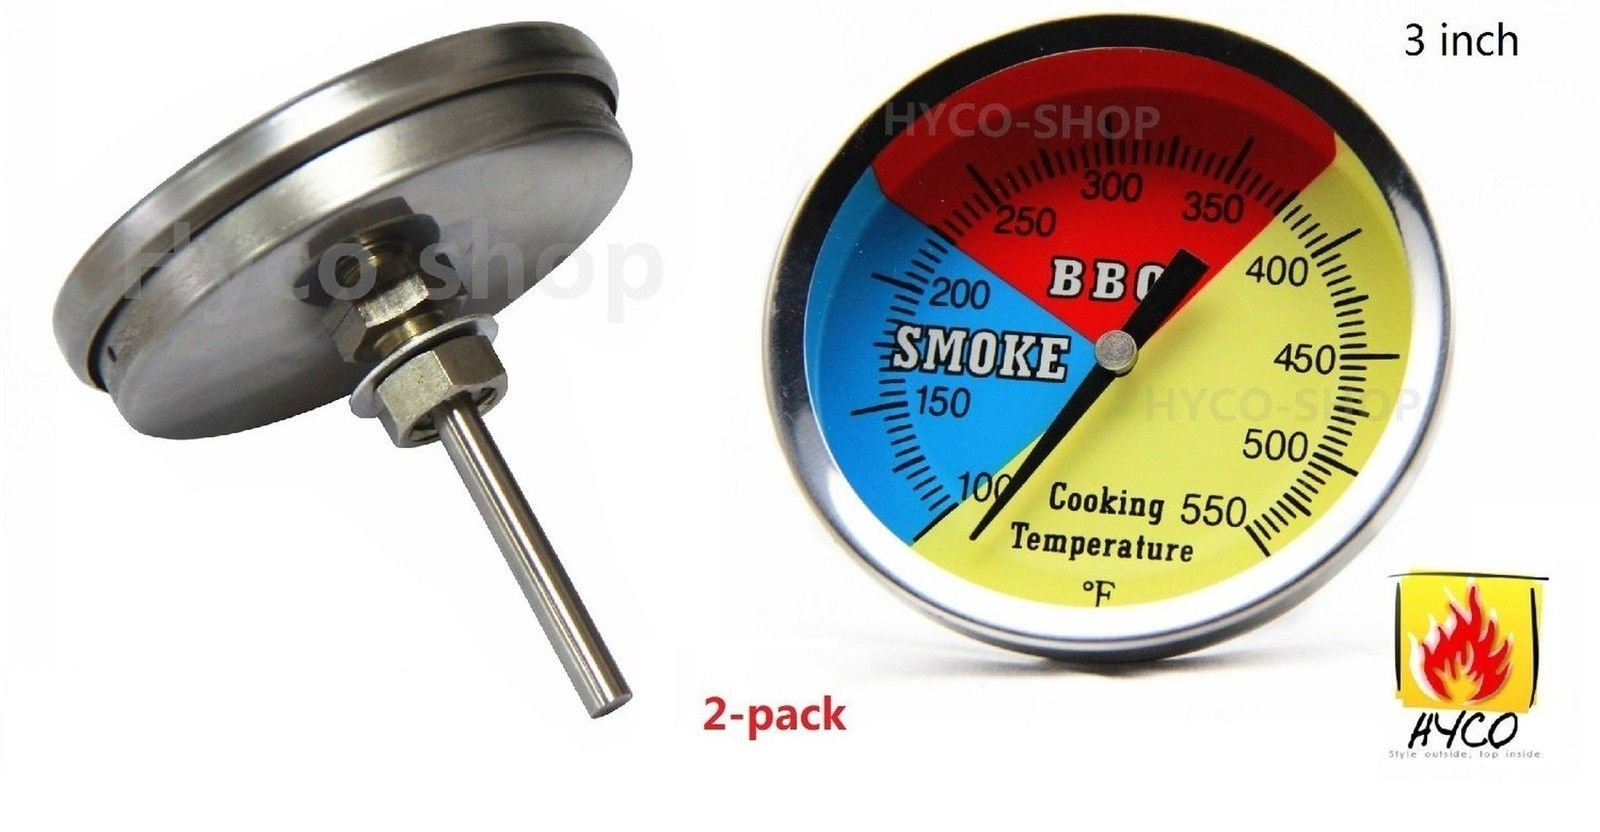 NEW 3'' 550F (2-pack) Grill and Smoker Thermometer, Heat Indicator, Temp Gauge